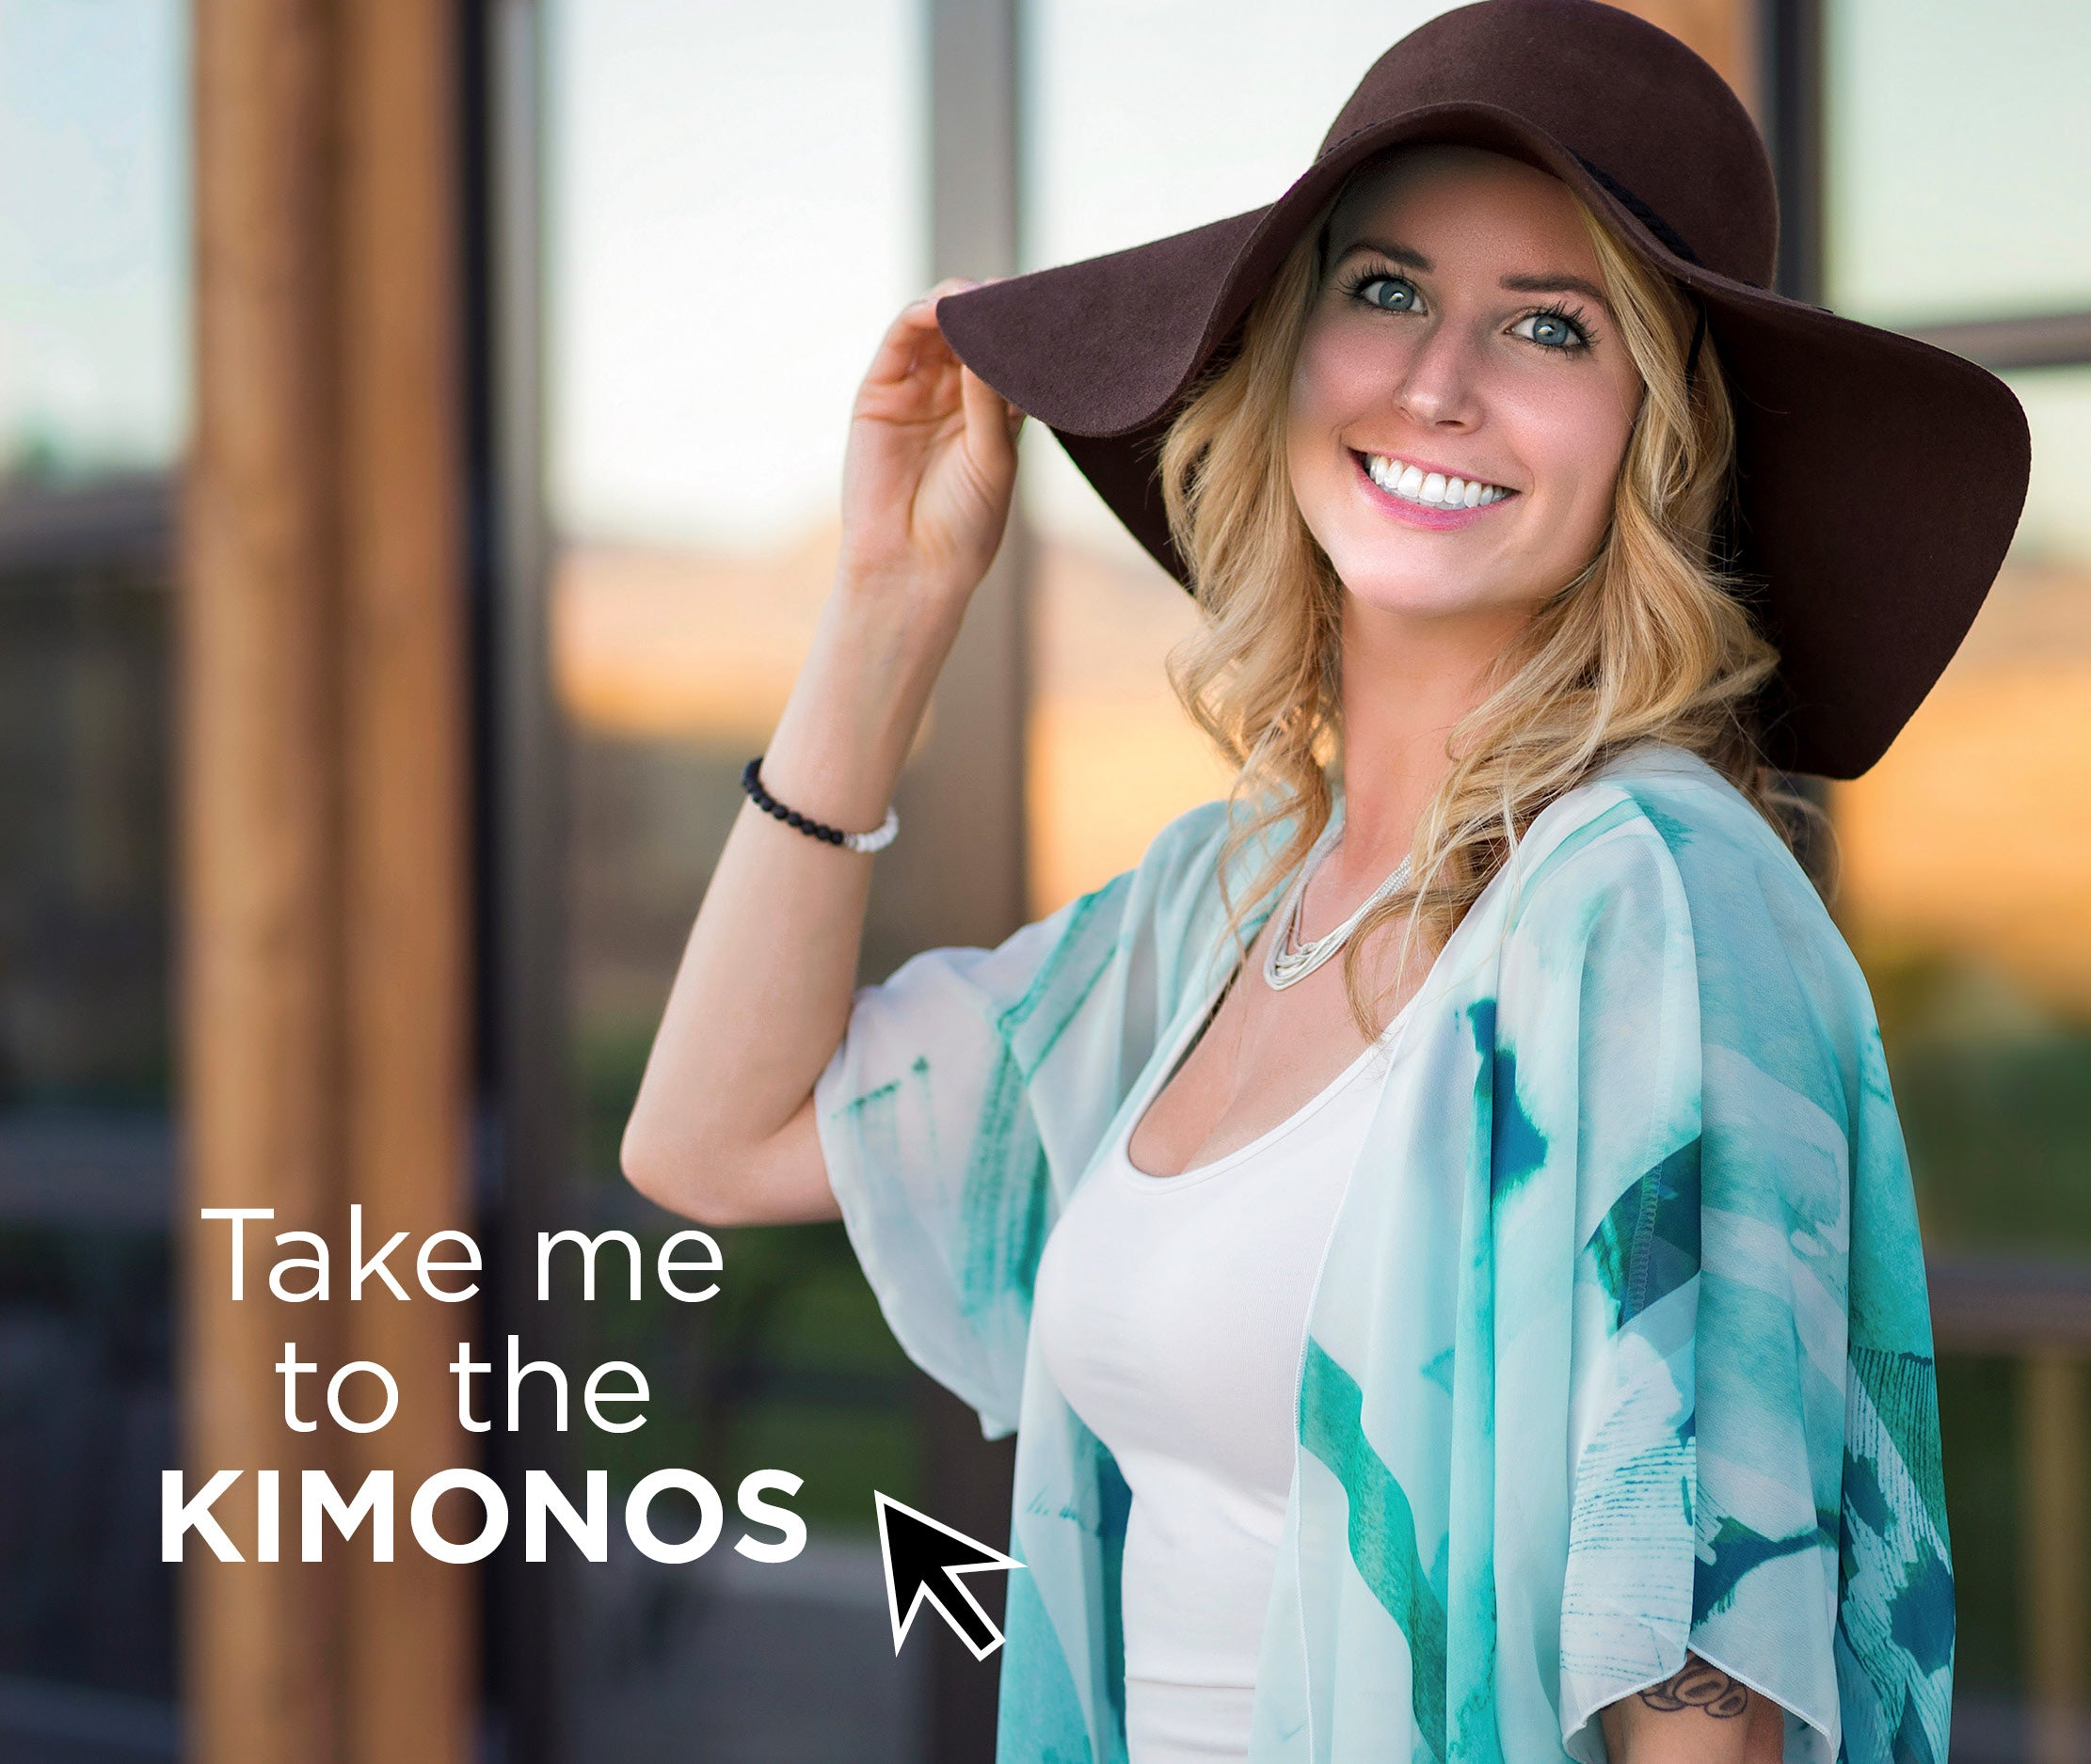 Browse: Kimonos